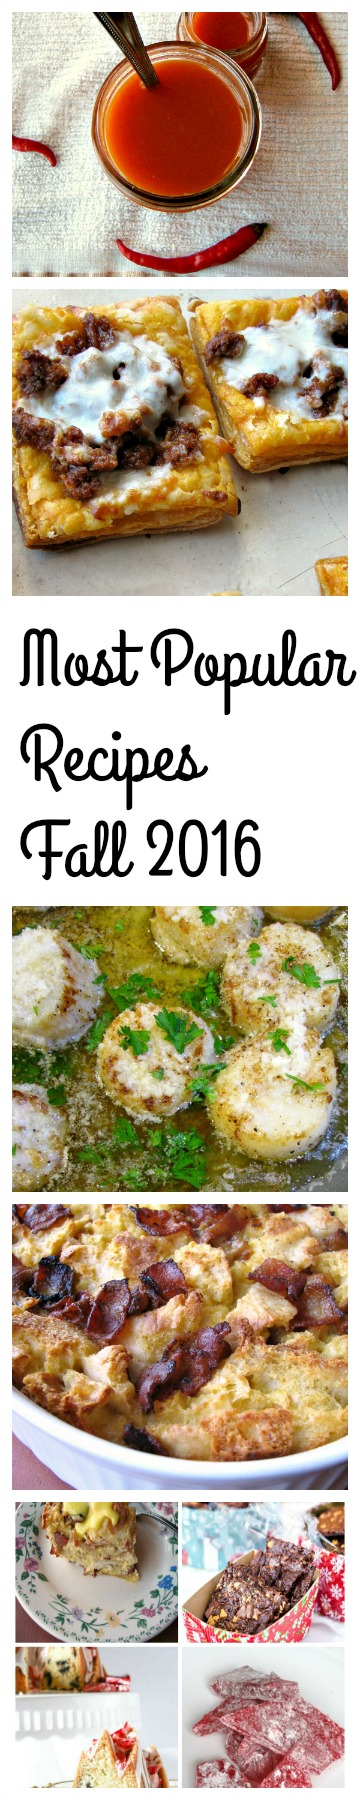 Most Popular Recipes Fall 2016- Homemade Cayenne Pepper Sauce, Cheesy Chorizo Puff Pastry Tarts, Browned Butter Garlic Parmesan Scallops, Overnight Eggs Benedict Casserole, 14 of the Best Christmas Recipes.